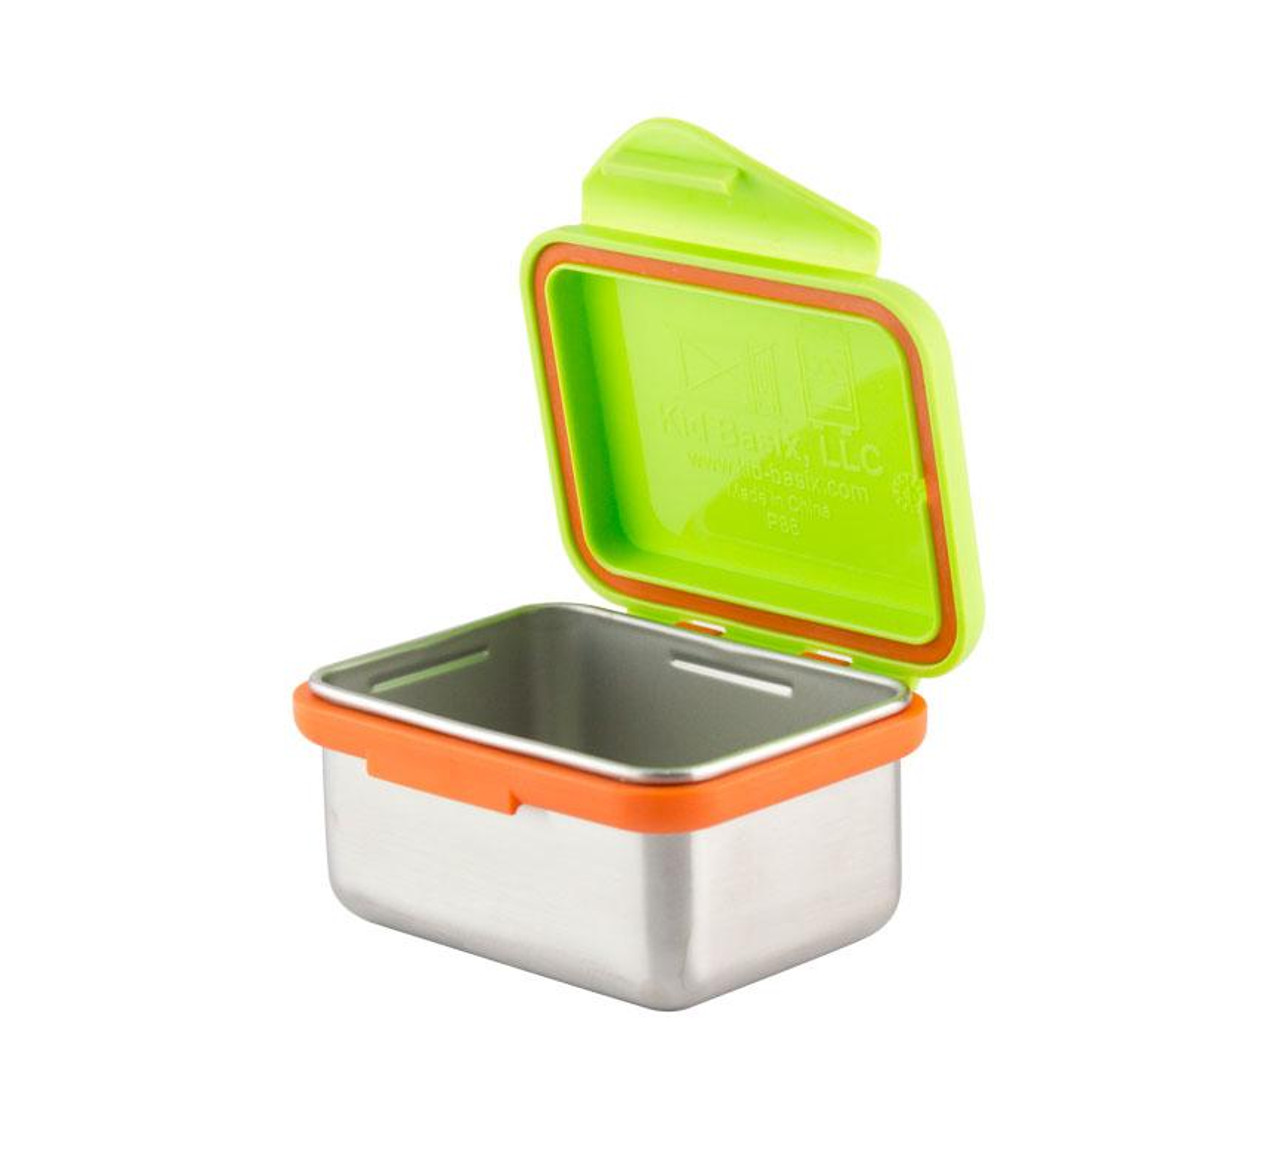 Kid Basix - Safe Snacker™ Stainless Steel Food Container with Attached Lid - 7 oz. - Lime (NW 00297 )